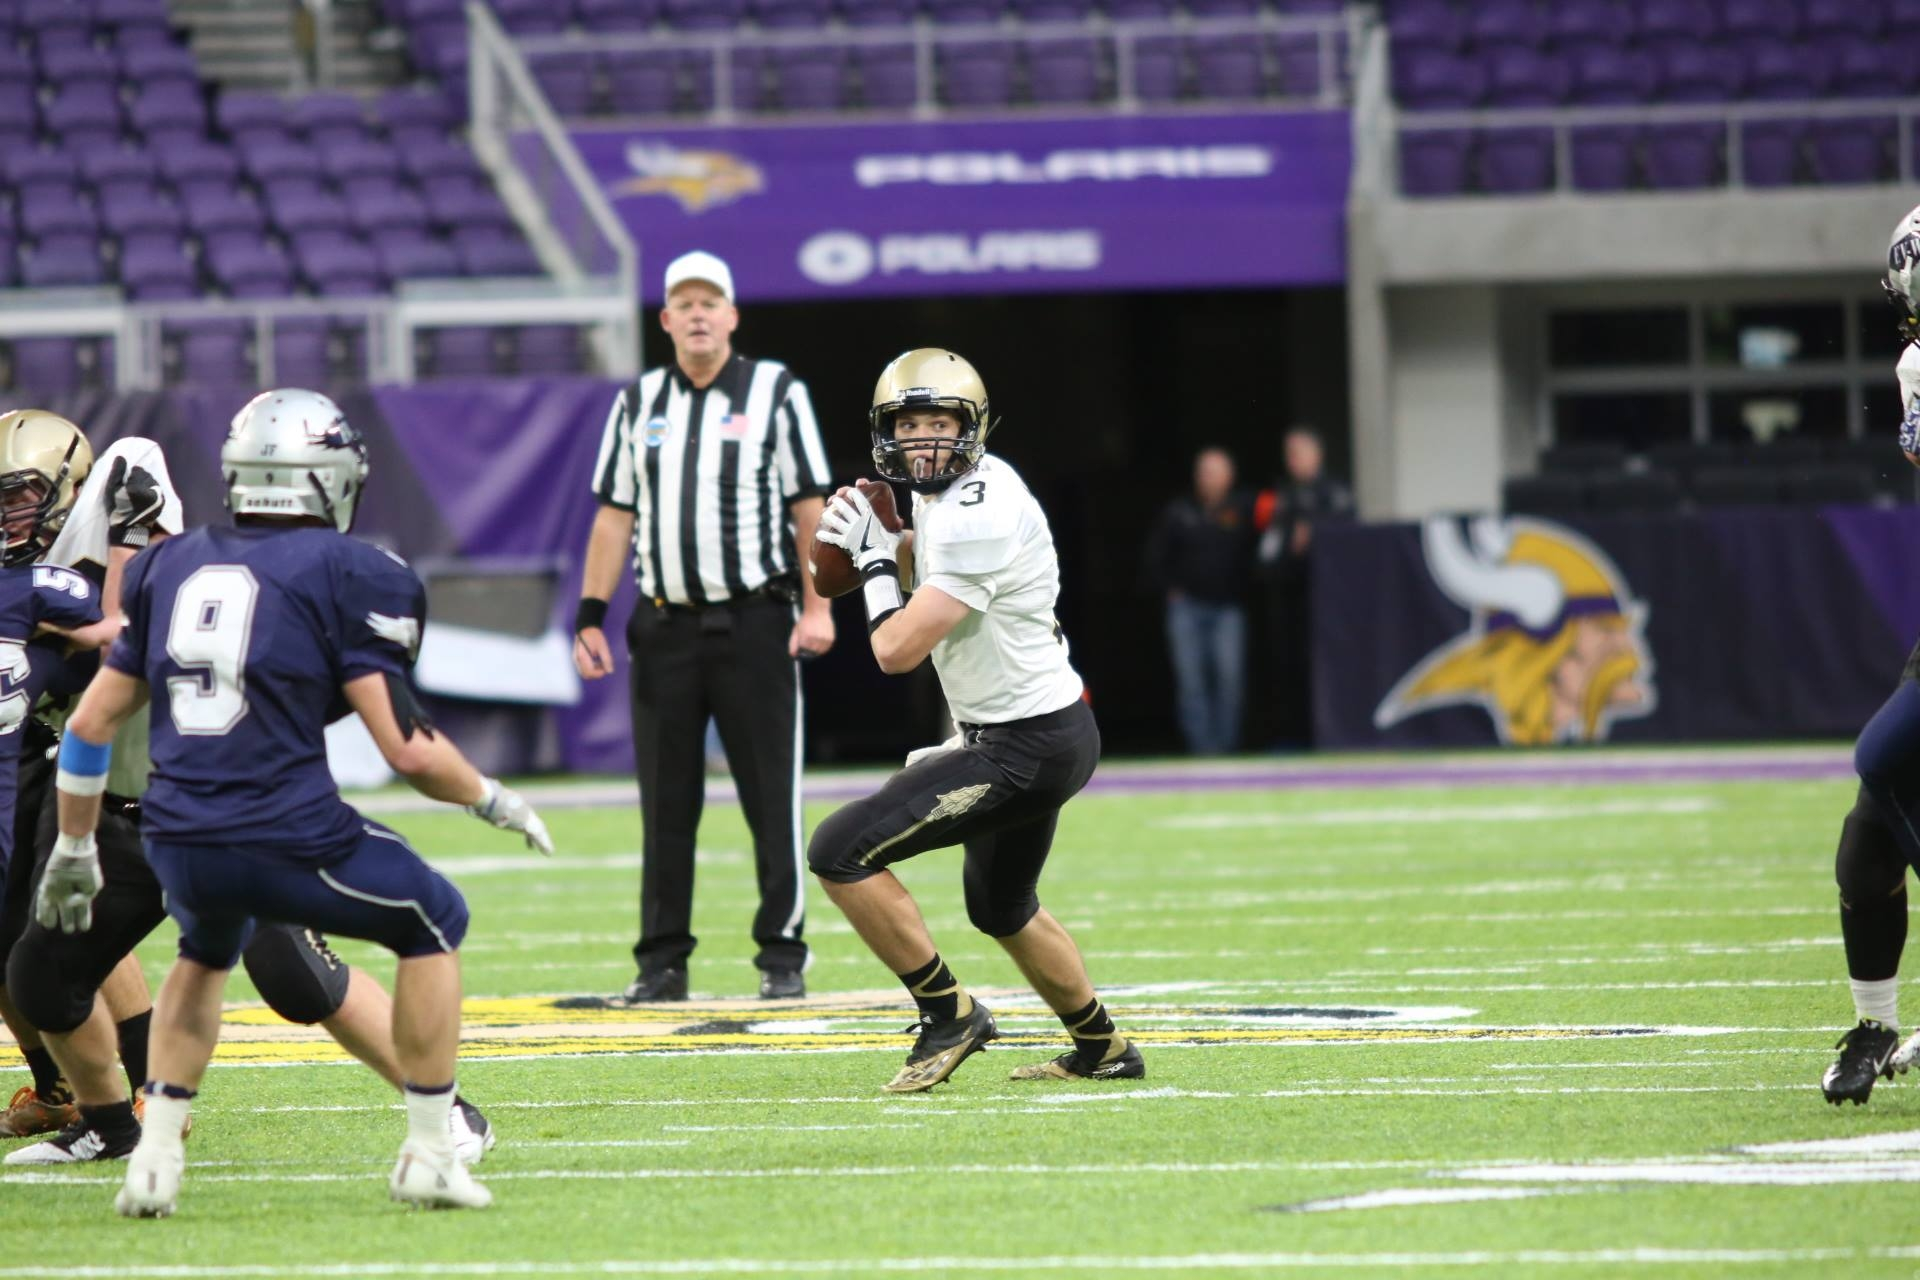 High School football, volleyball seasons in Minnesota moving to spring, state adds 4th season